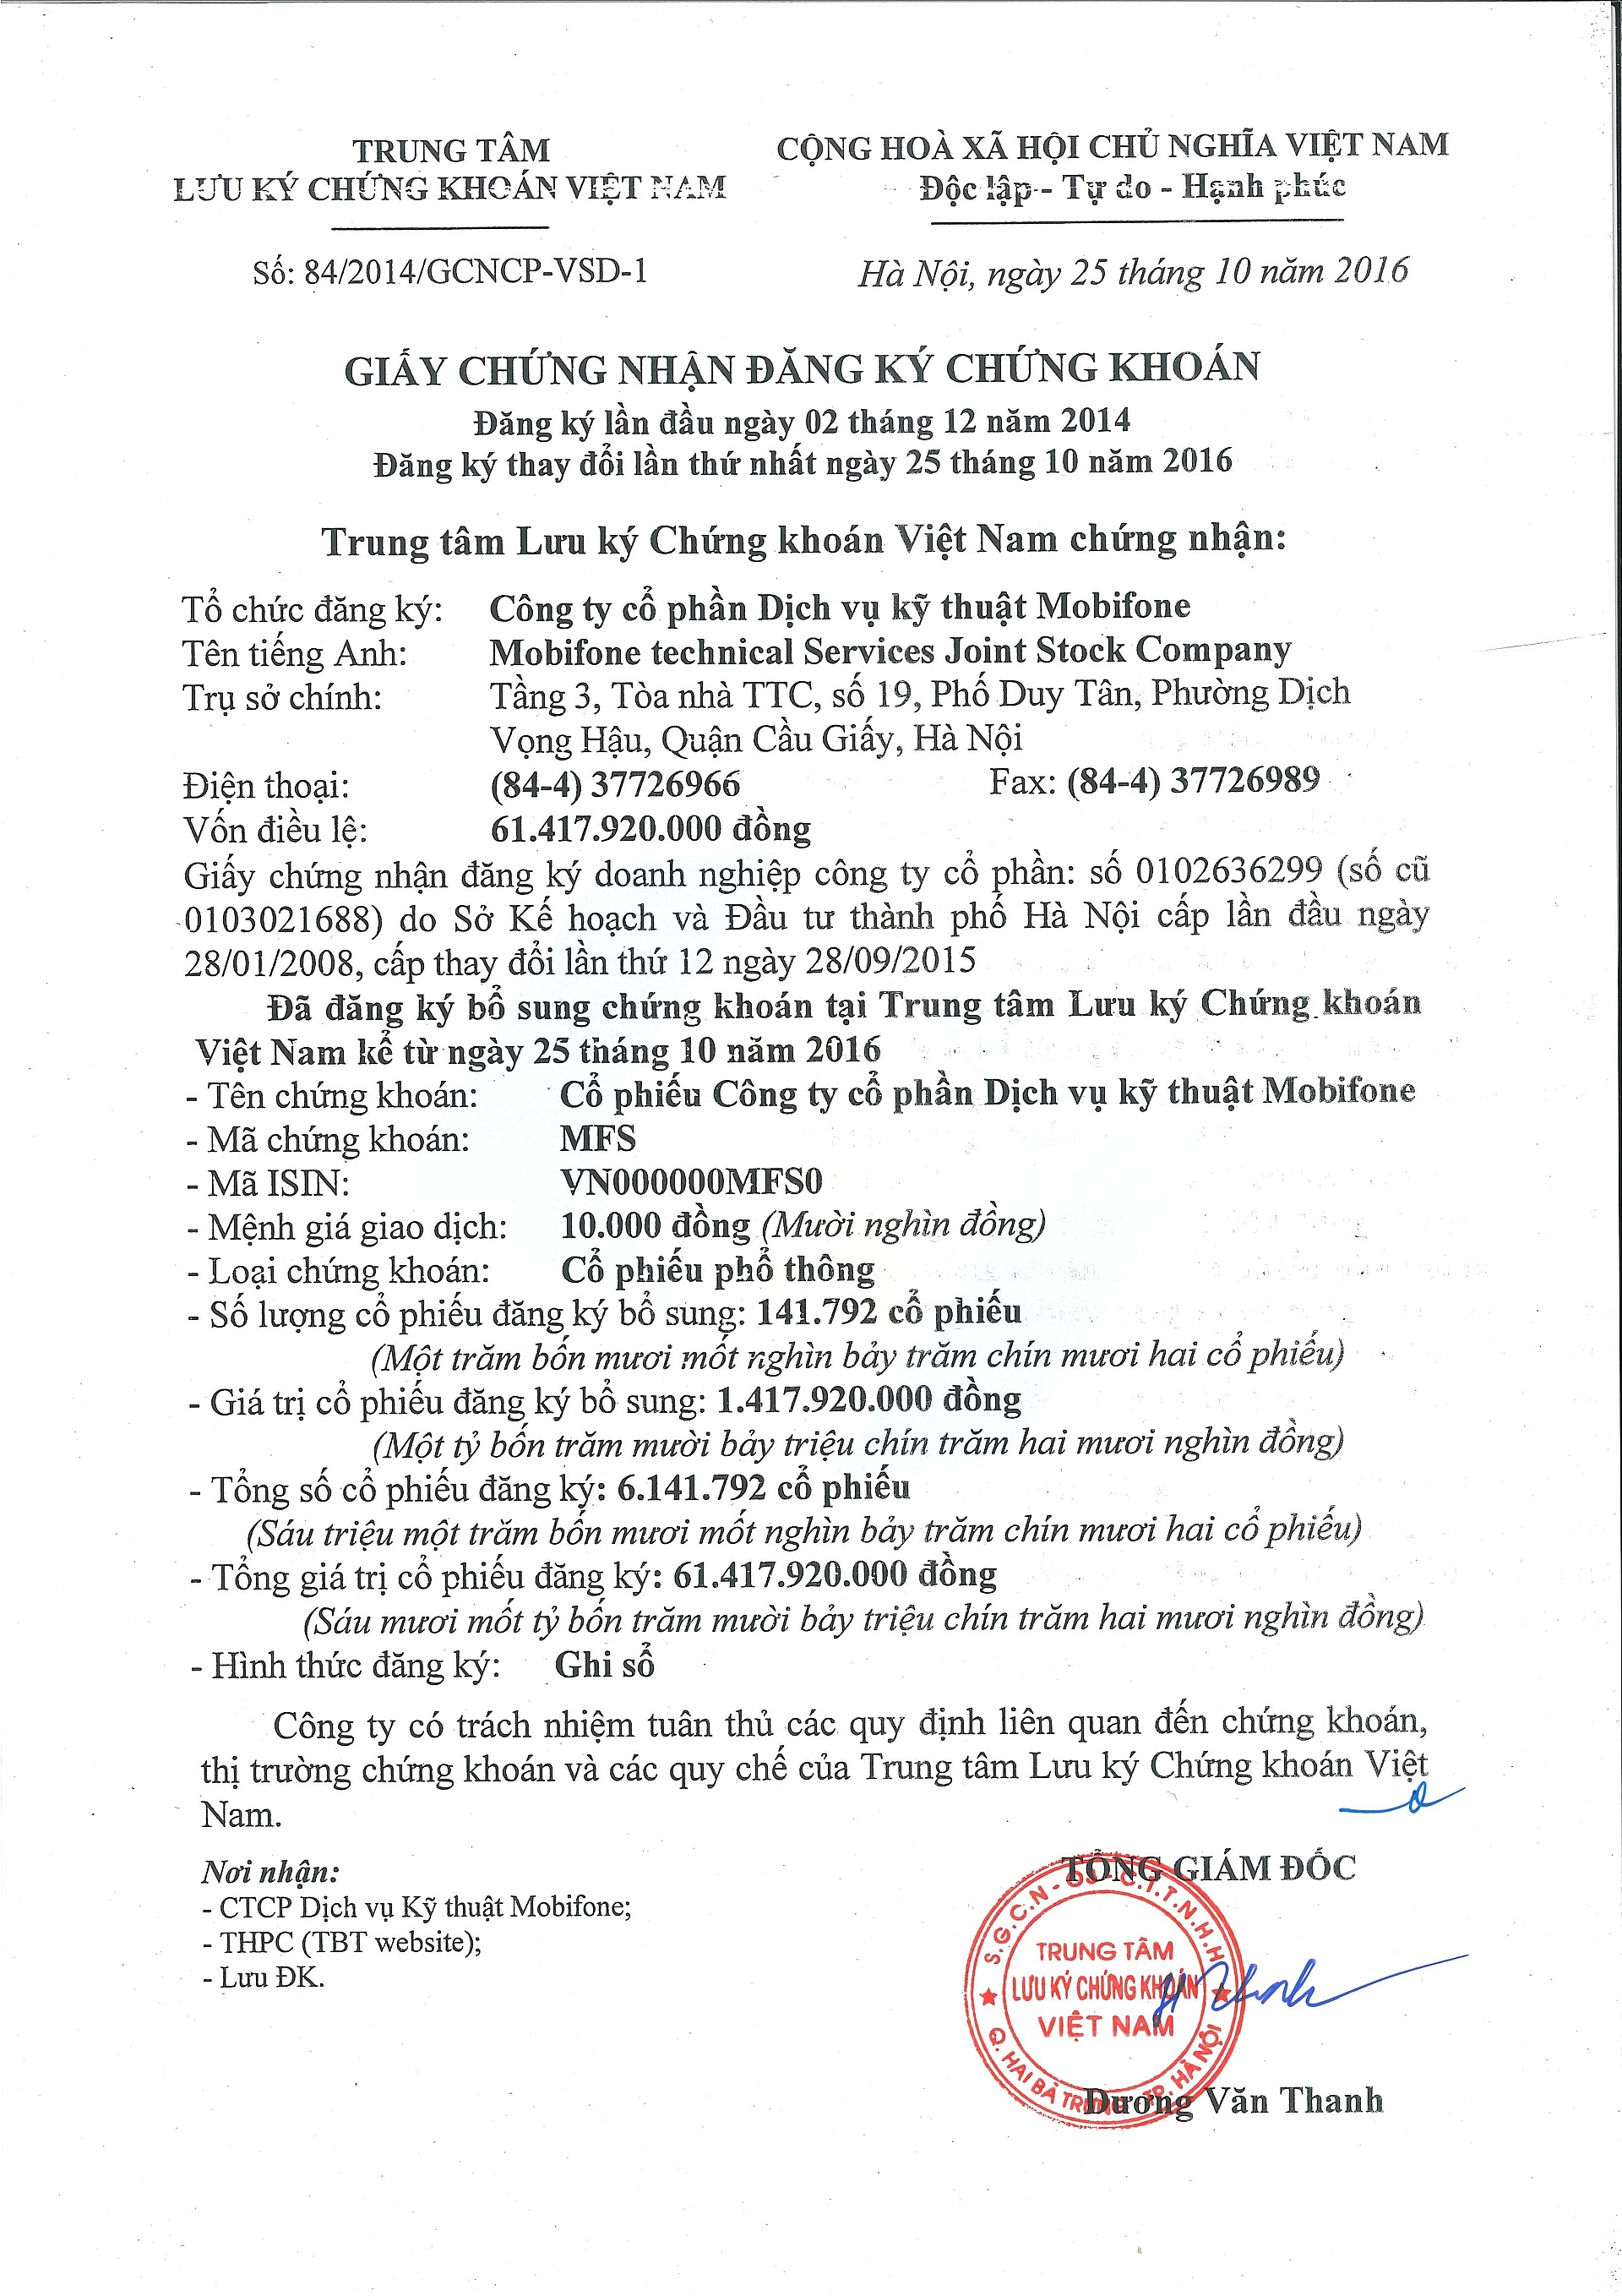 gcn-84-2014-gcncp-vsd1_page_1